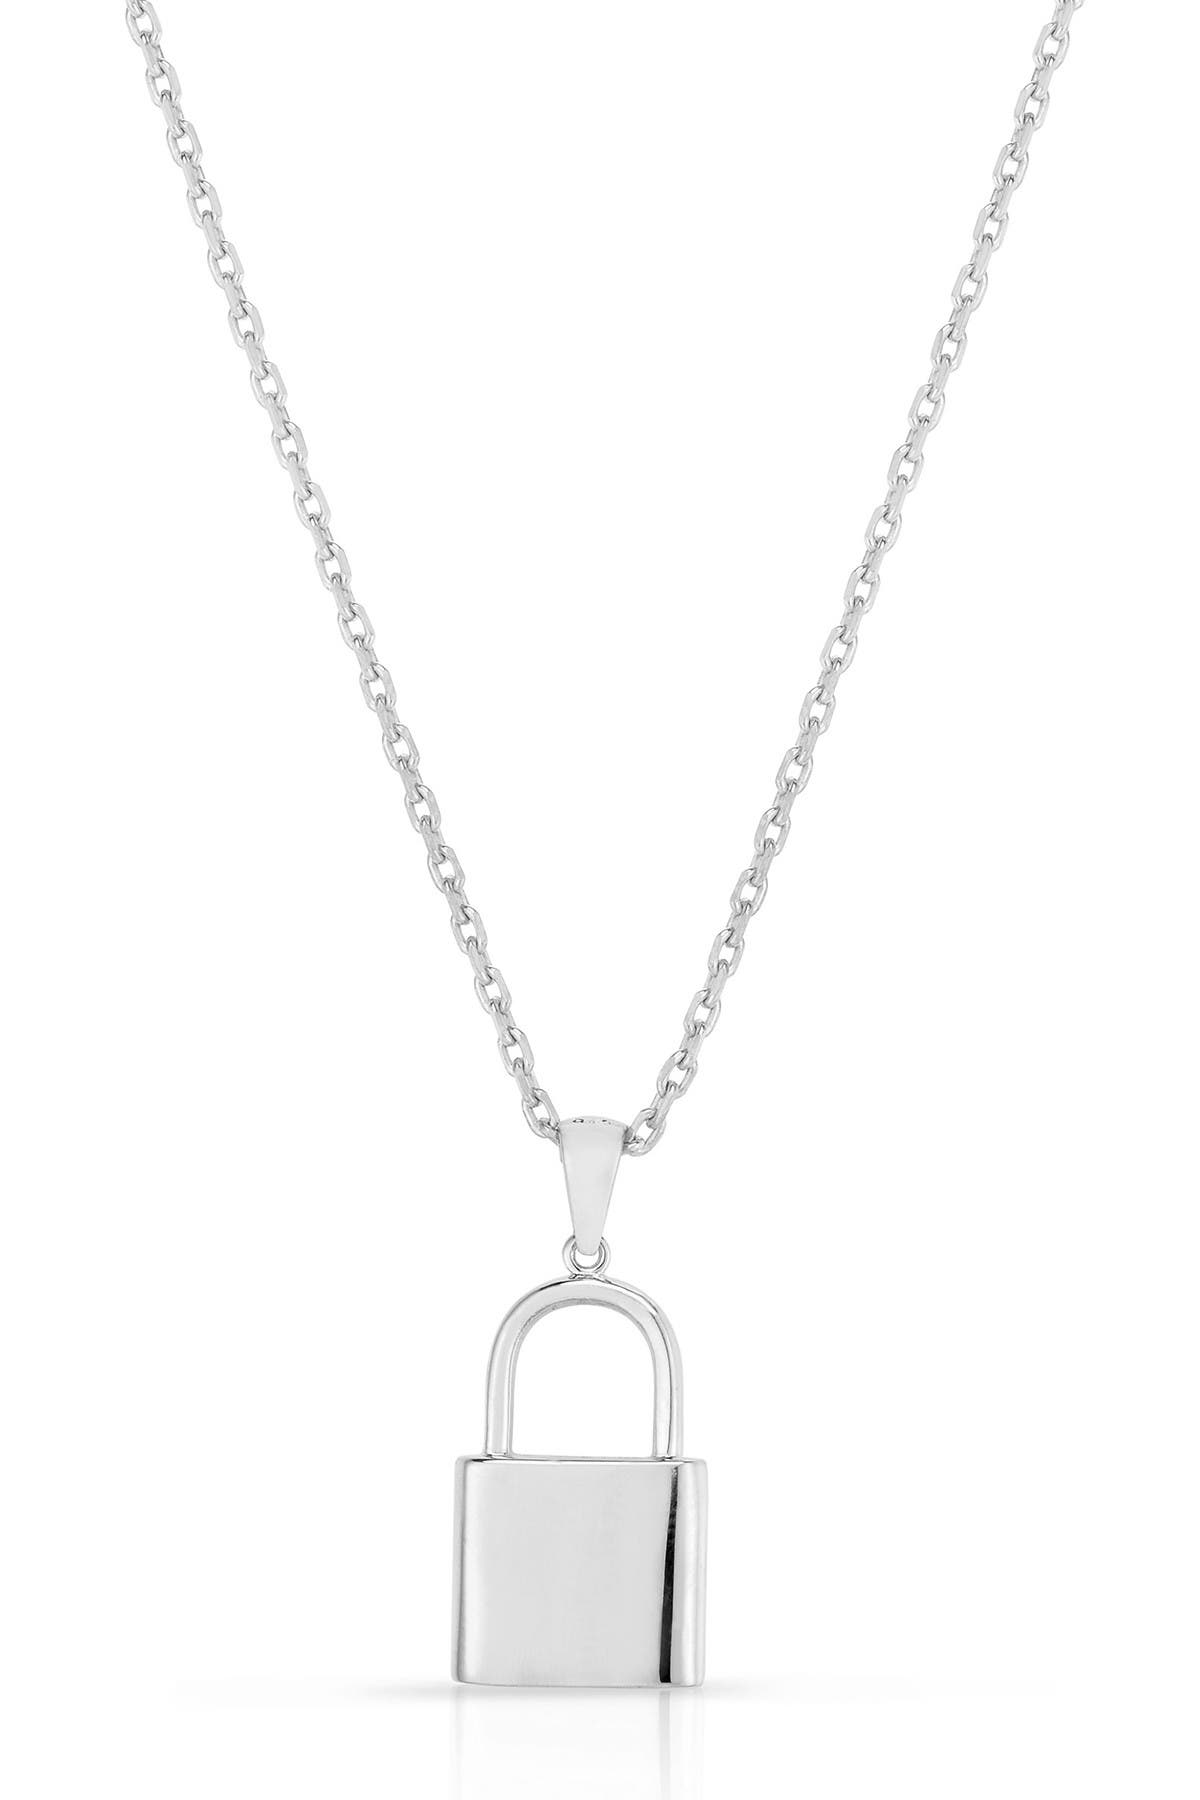 Image of Sphera Milano 14K White Gold Plated Sterling Silver Padlock Pendant Necklace